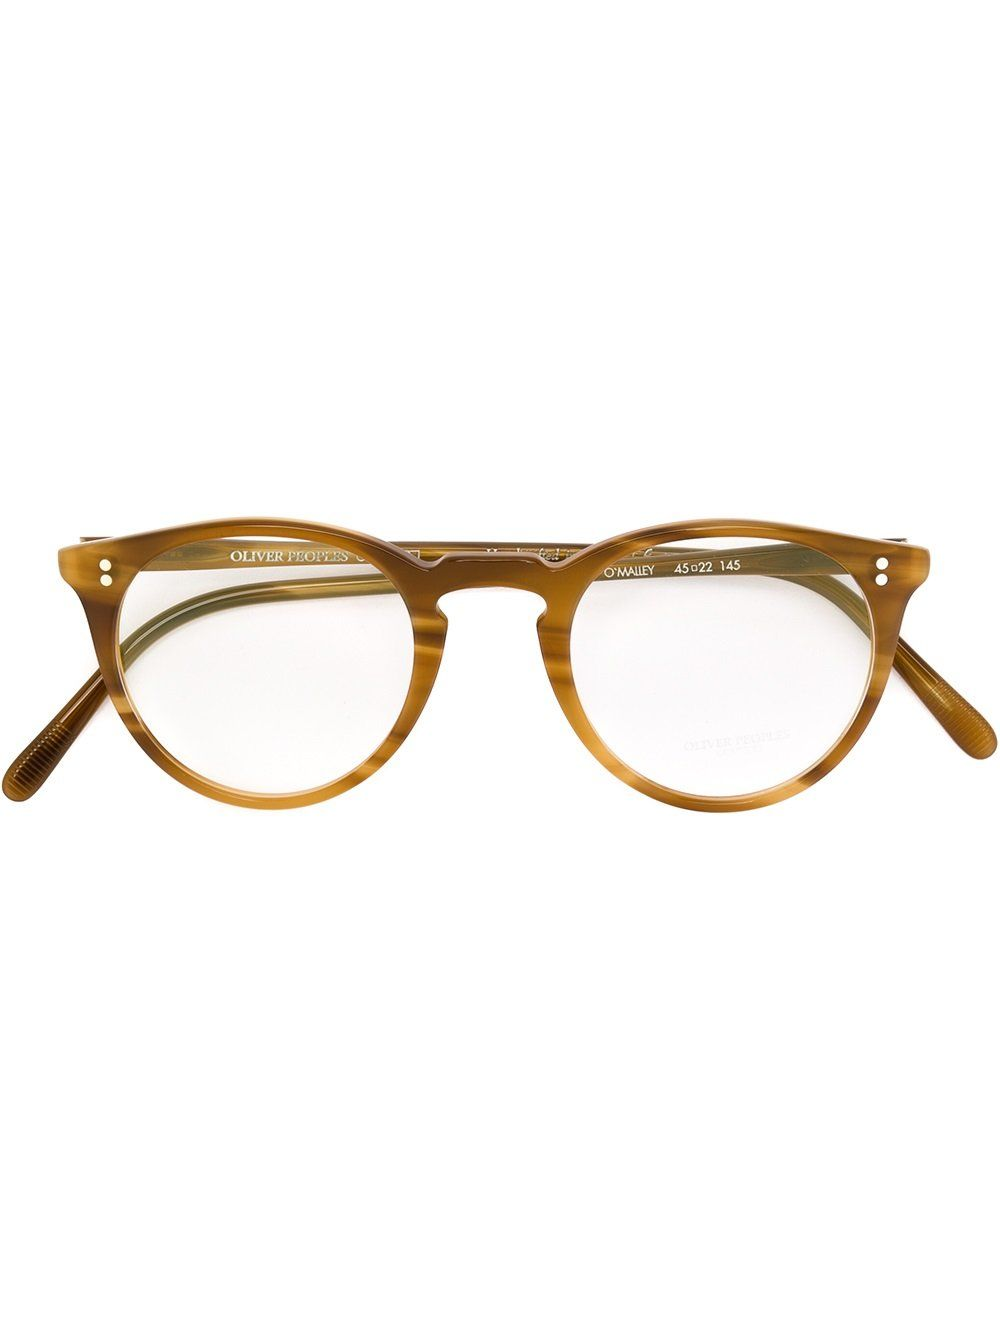 c4021a7b53 OLIVER PEOPLES NUDE   NEUTRALS.  oliverpeoples